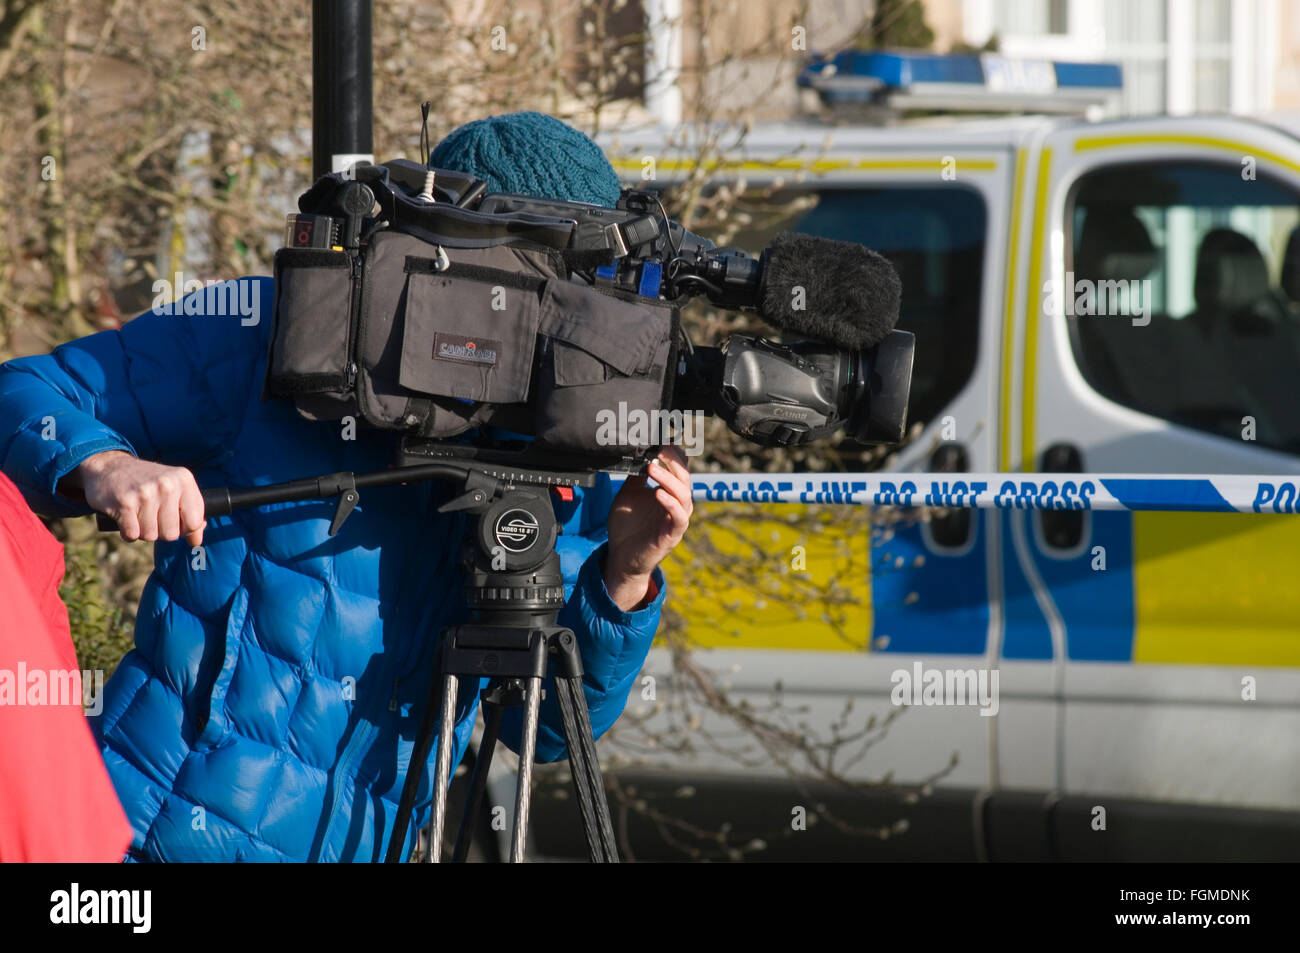 tv news crew camera man men cameraman cameramen gathering local national television broadcast broadcasters worthy - Stock Image